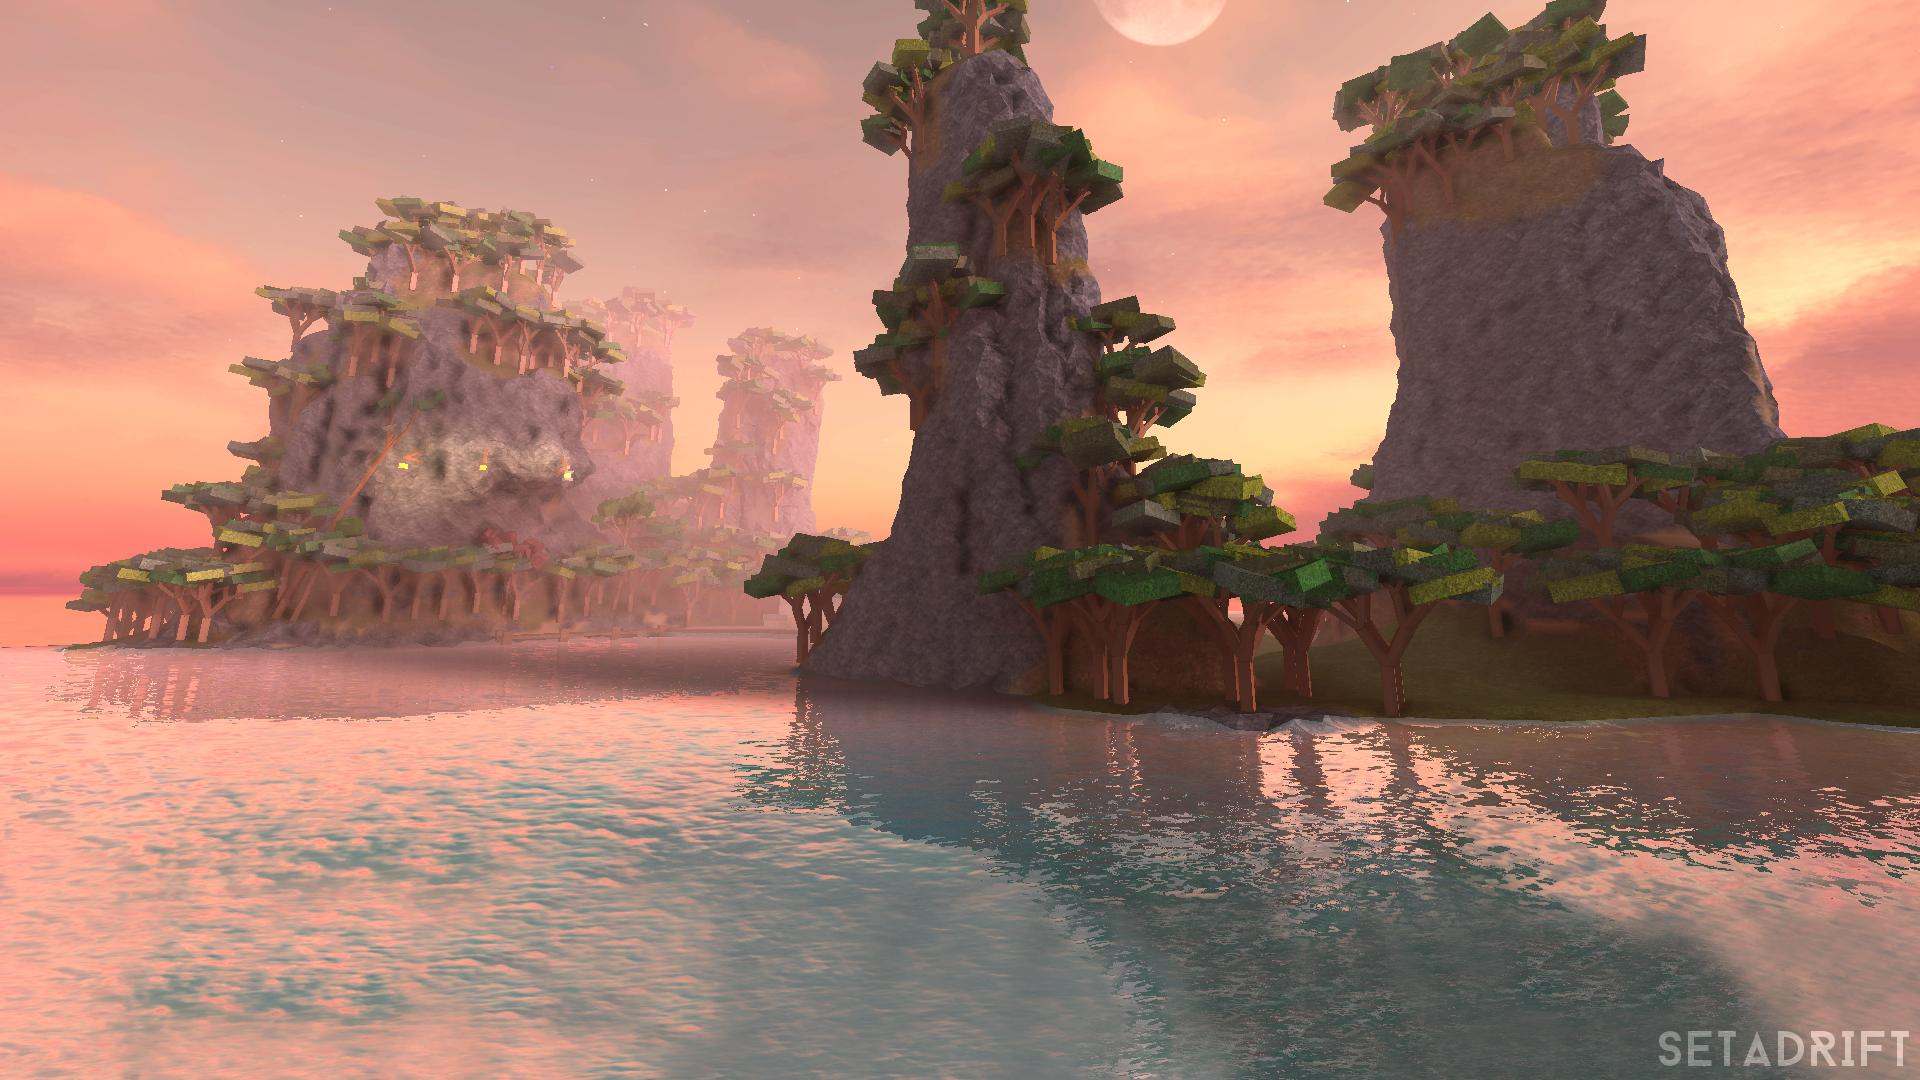 Roblox Rivals Far Cry With New Voxel Terrain Creation System